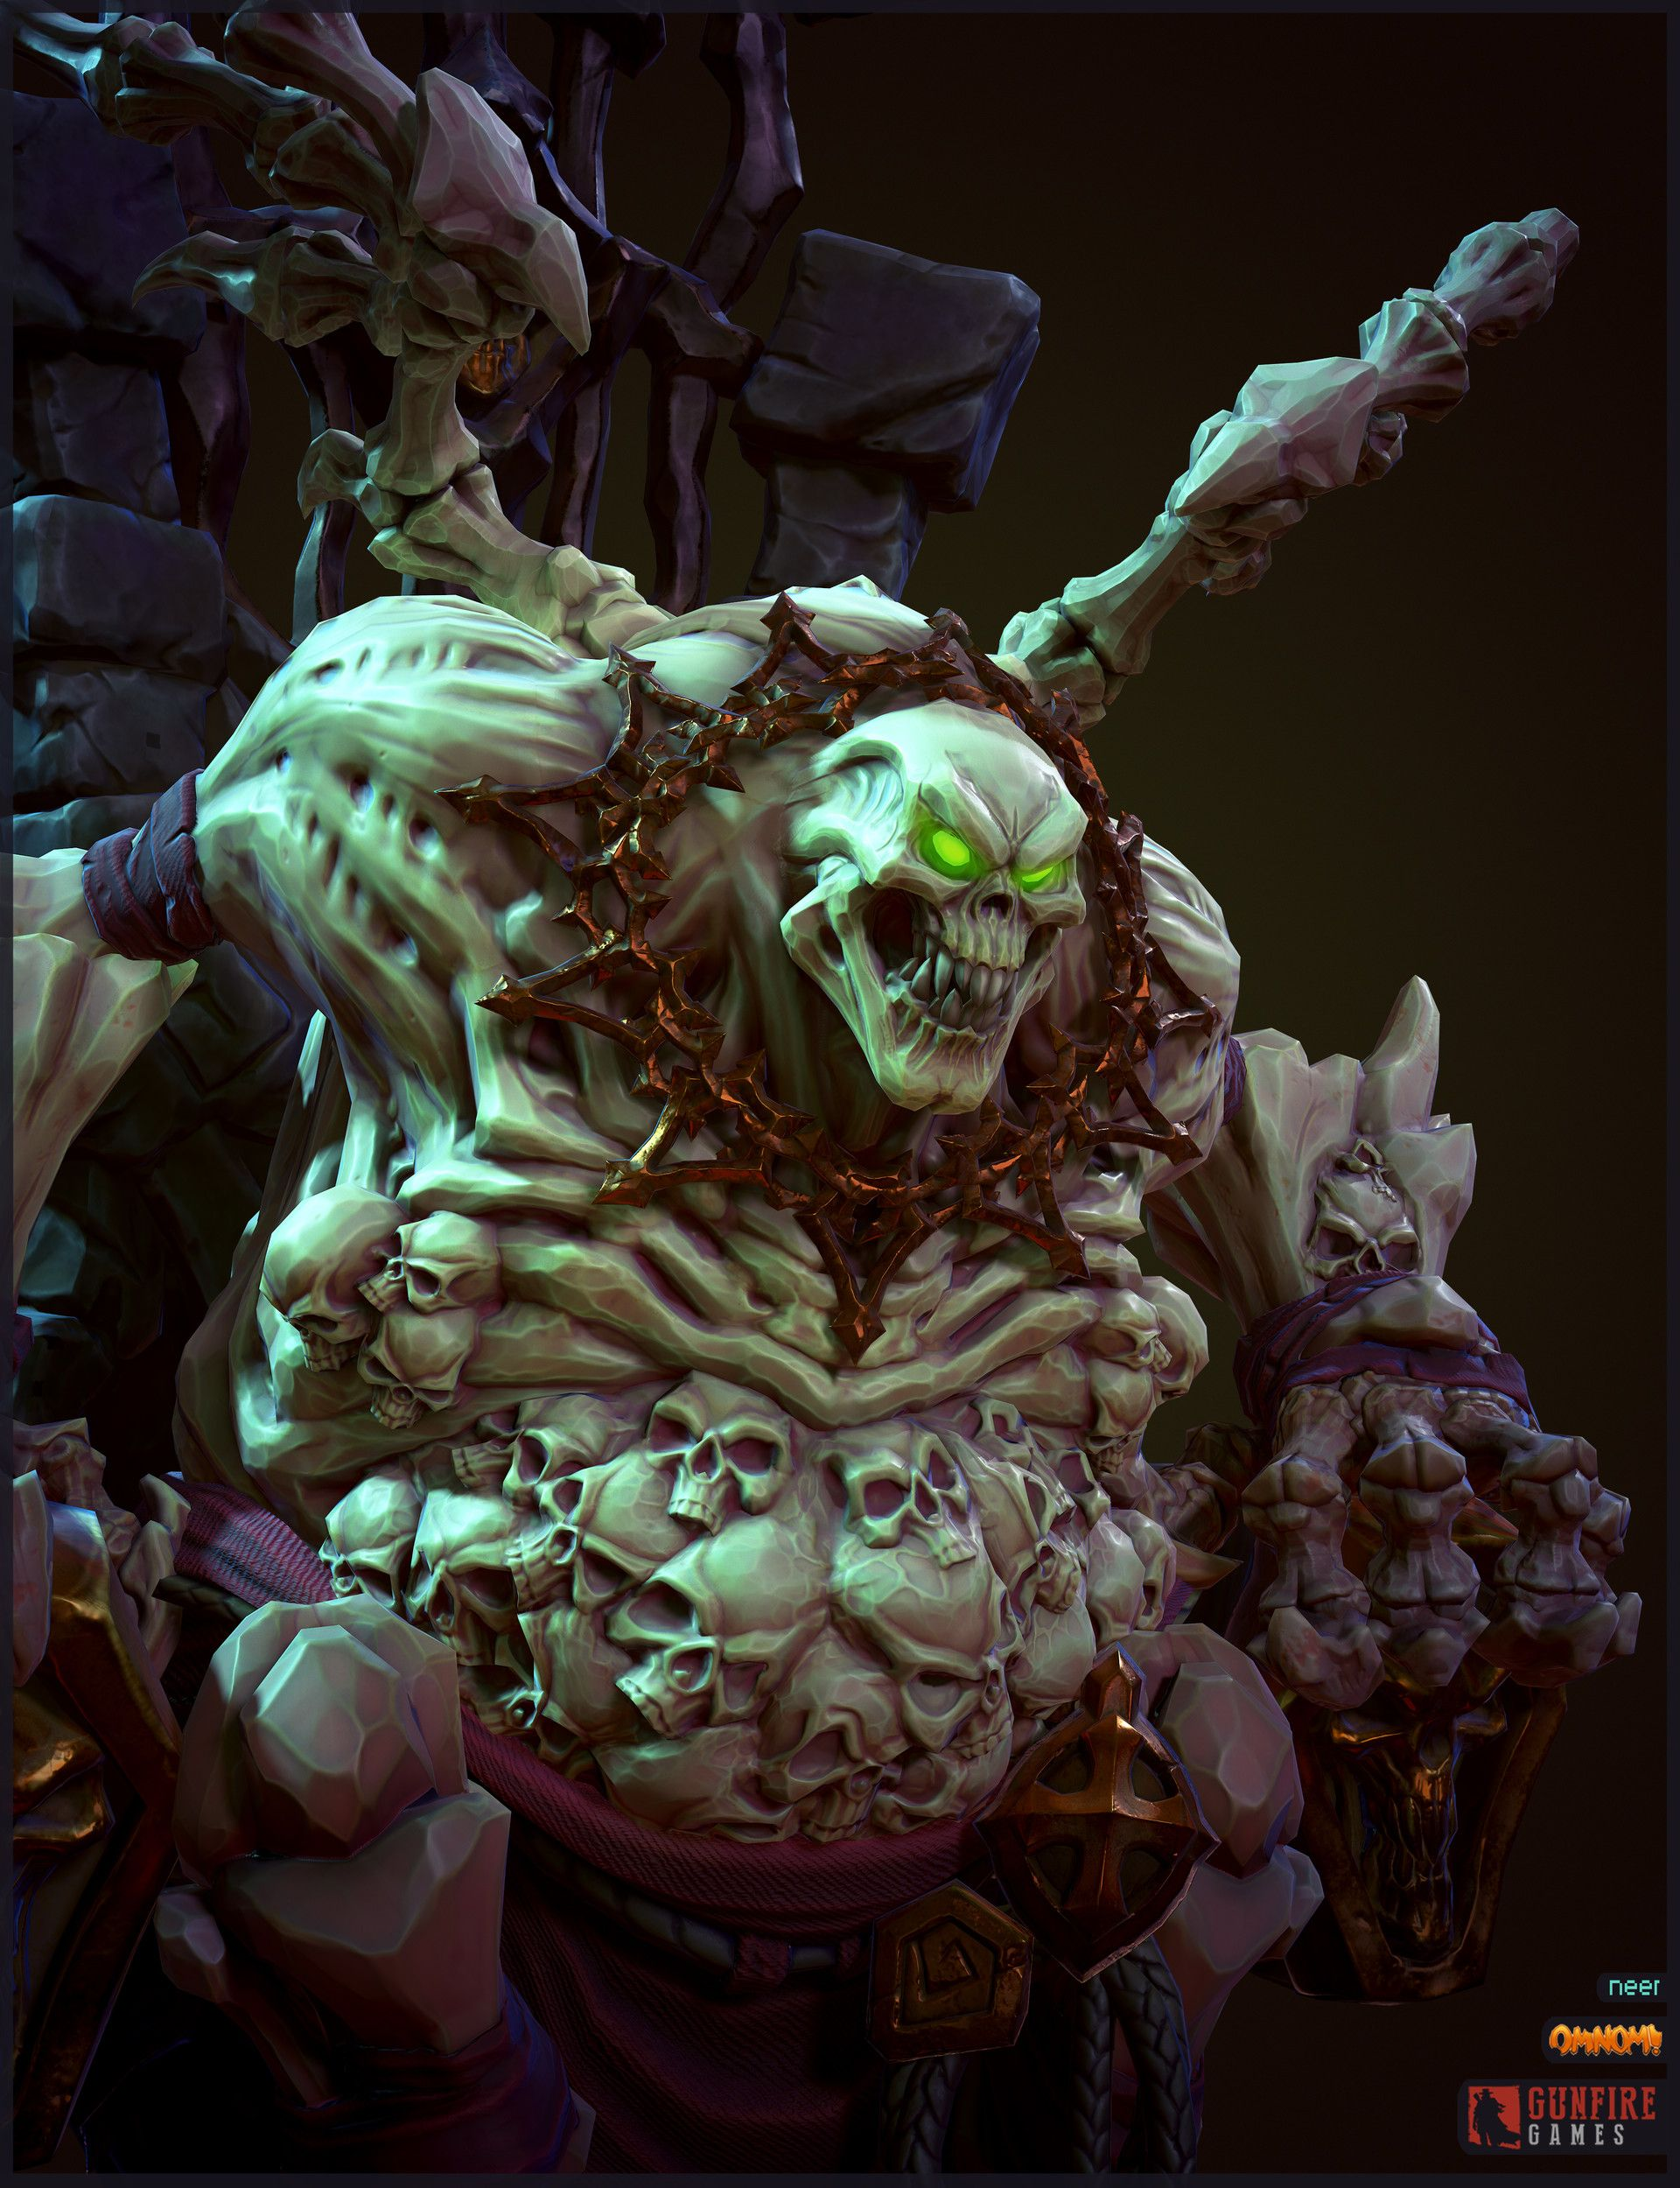 ArtStation - Corrupted Tomekeeper - Darksiders 3, Neer